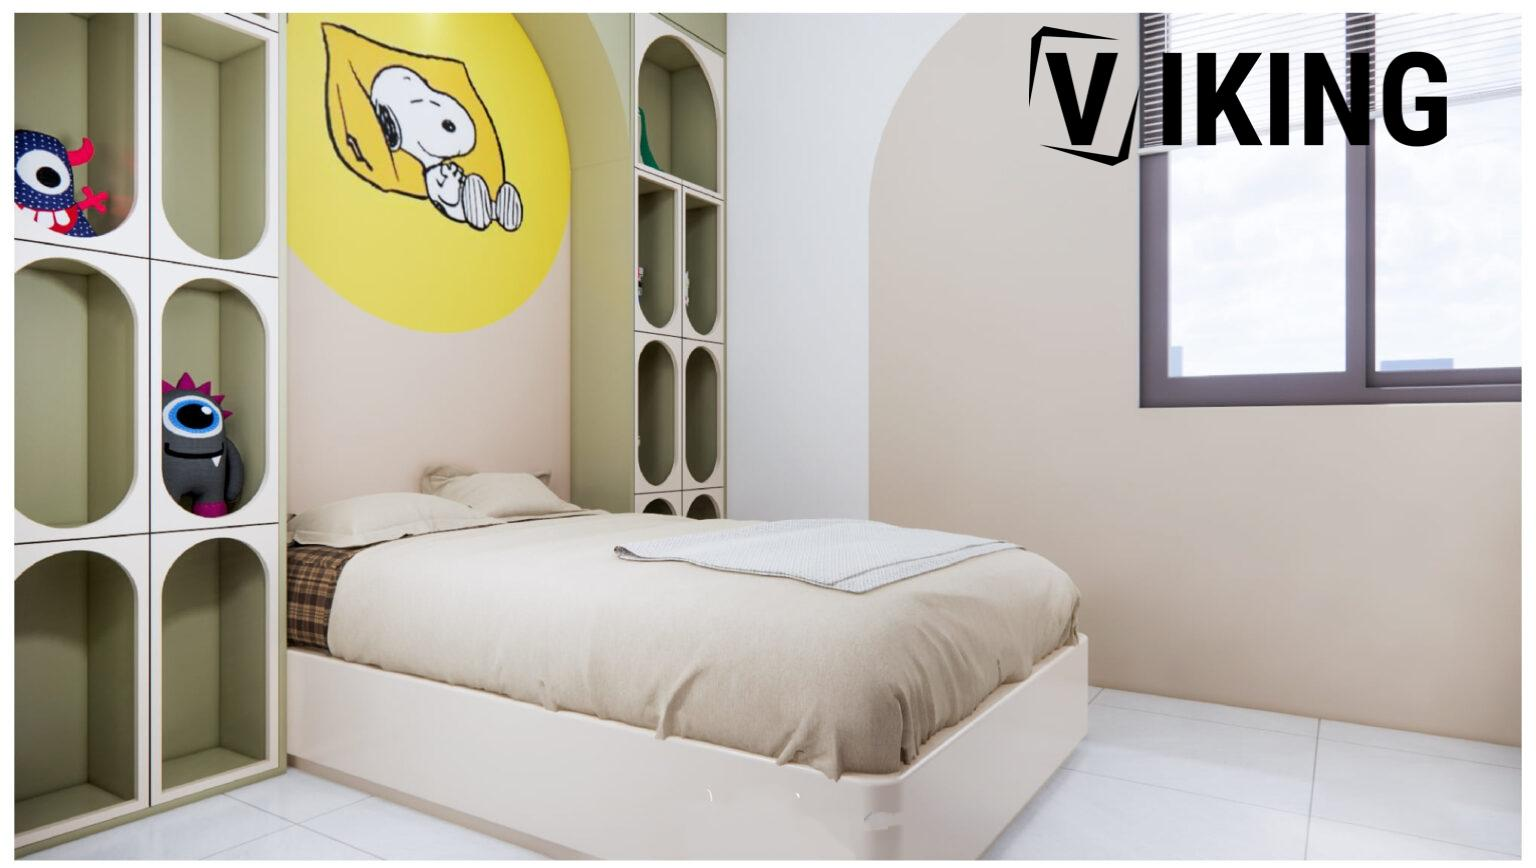 2730.Child Bed Sketchup File free download by Le Nguyen Van Thuyen 1 1536x868 1